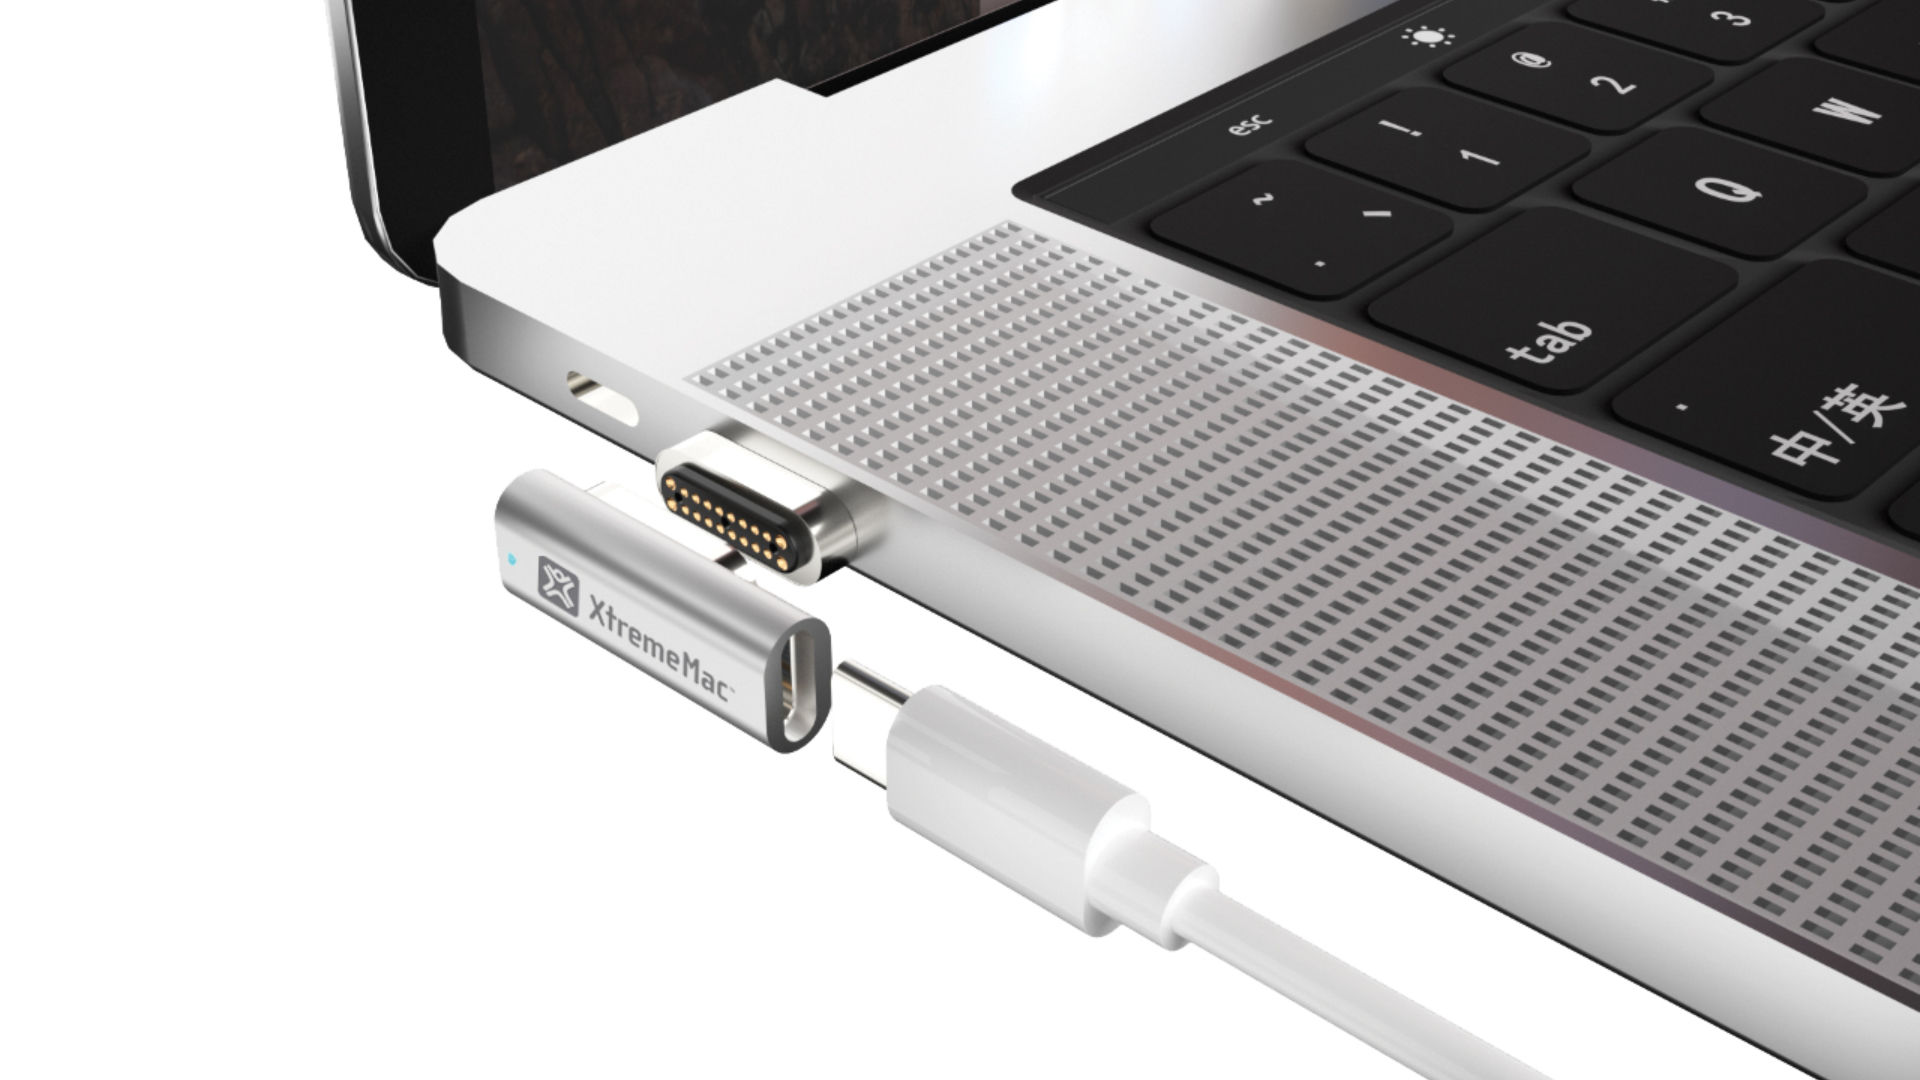 xtrememac Magnetic adapter